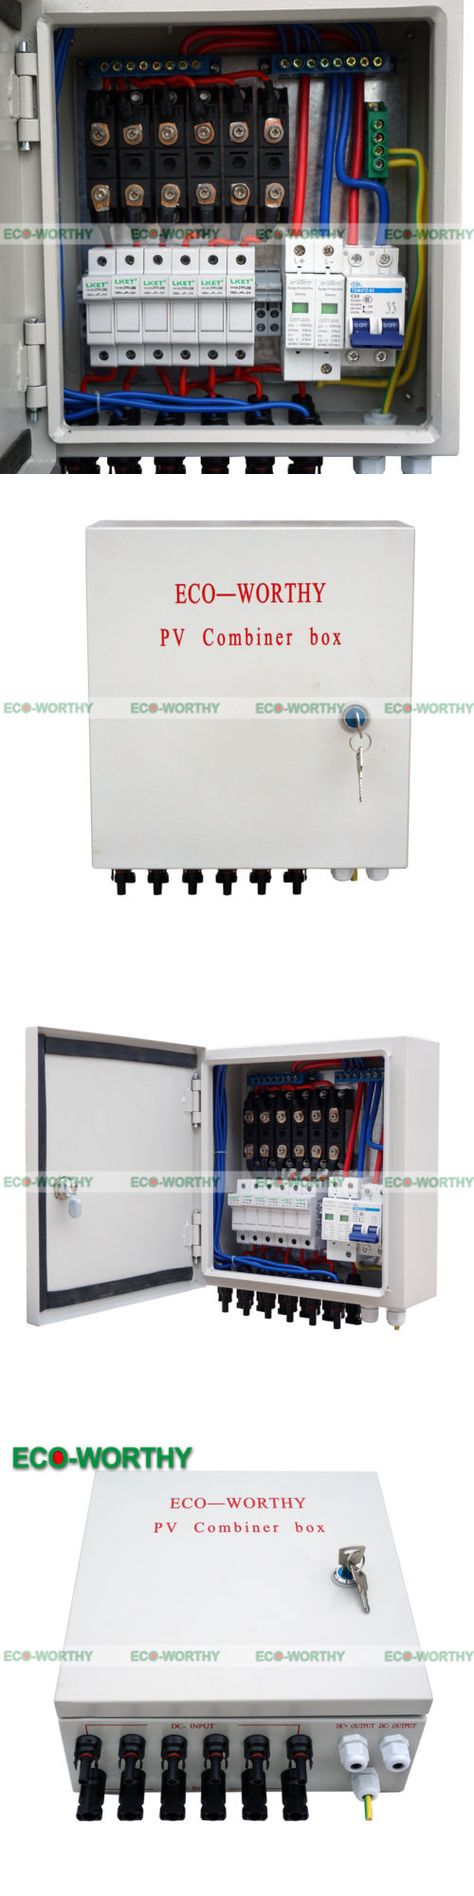 Light Fuse Box Pictures Images On Safe Circuit Breakers And Boxes 20596 Eco 6 String Solar Combine